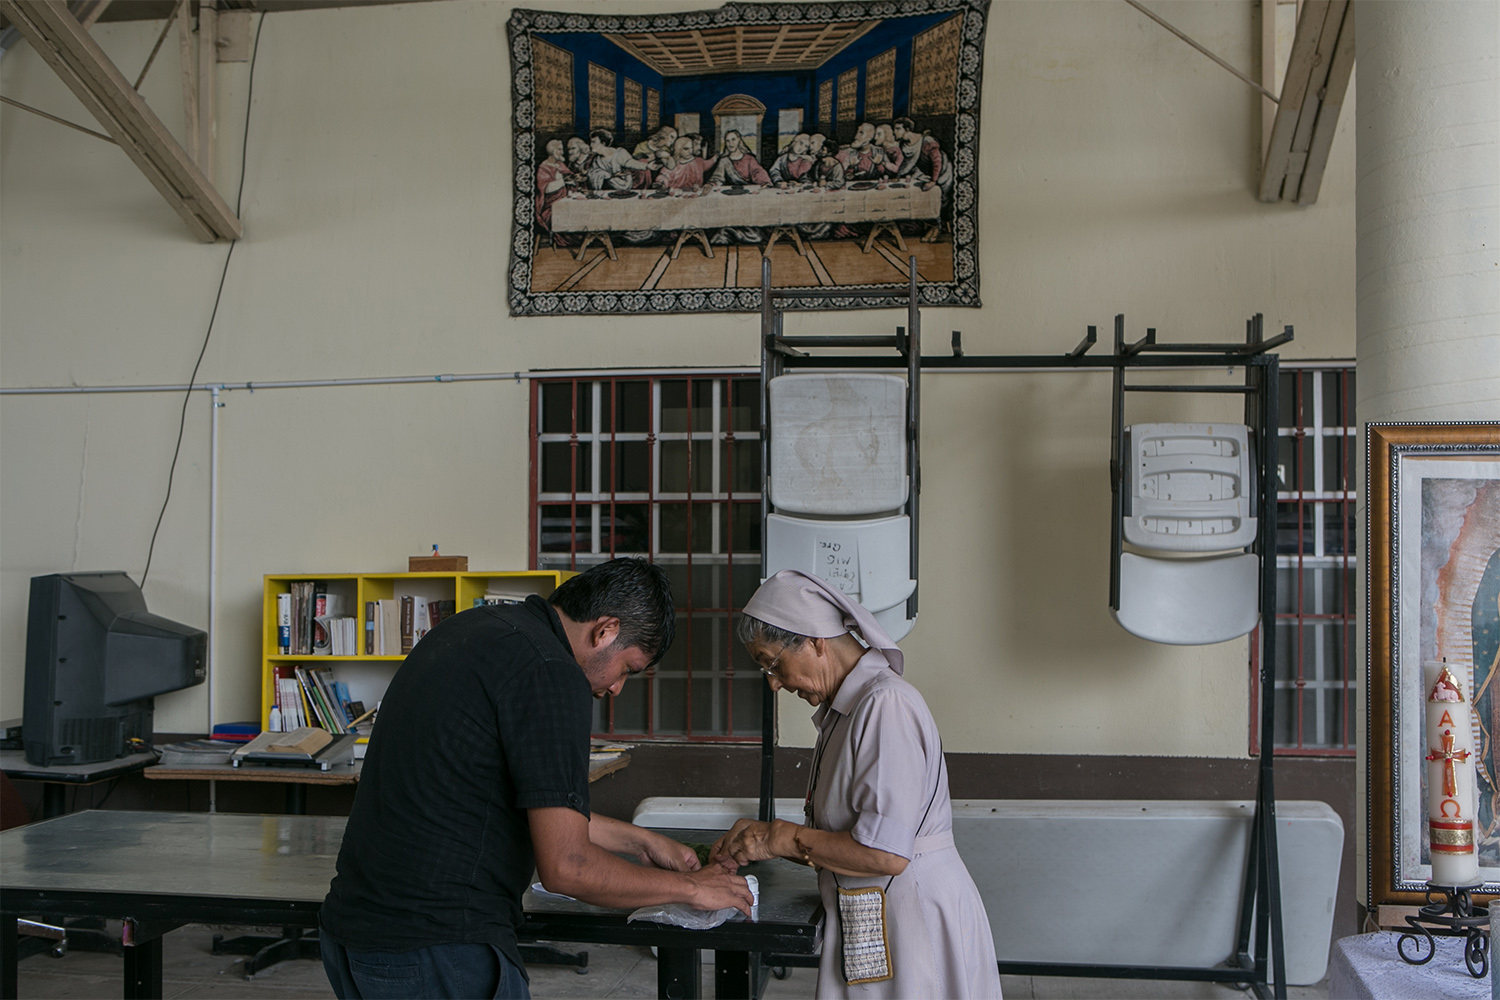 A nun helps a patient with his medication at Casa del Migrante Reynosa Guadalupe in Reynosa, Mexico, on May 2, 2017. According to the director of the shelter, the majority of the people staying at the shelter are recent deportees from the United States.